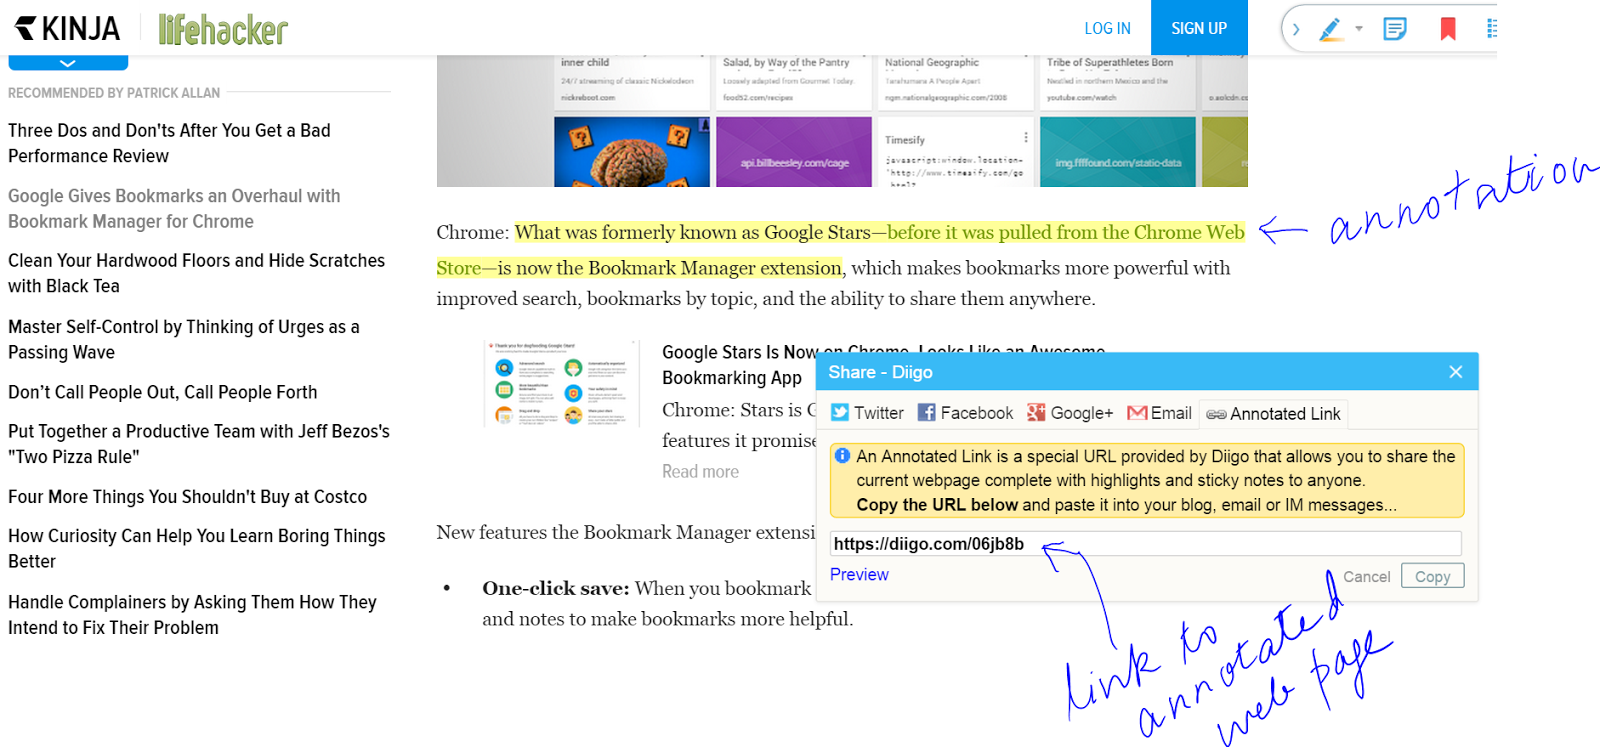 Diigo Lets You Annotate A Web Page And Share A Link To It That Preserves  The Annotations